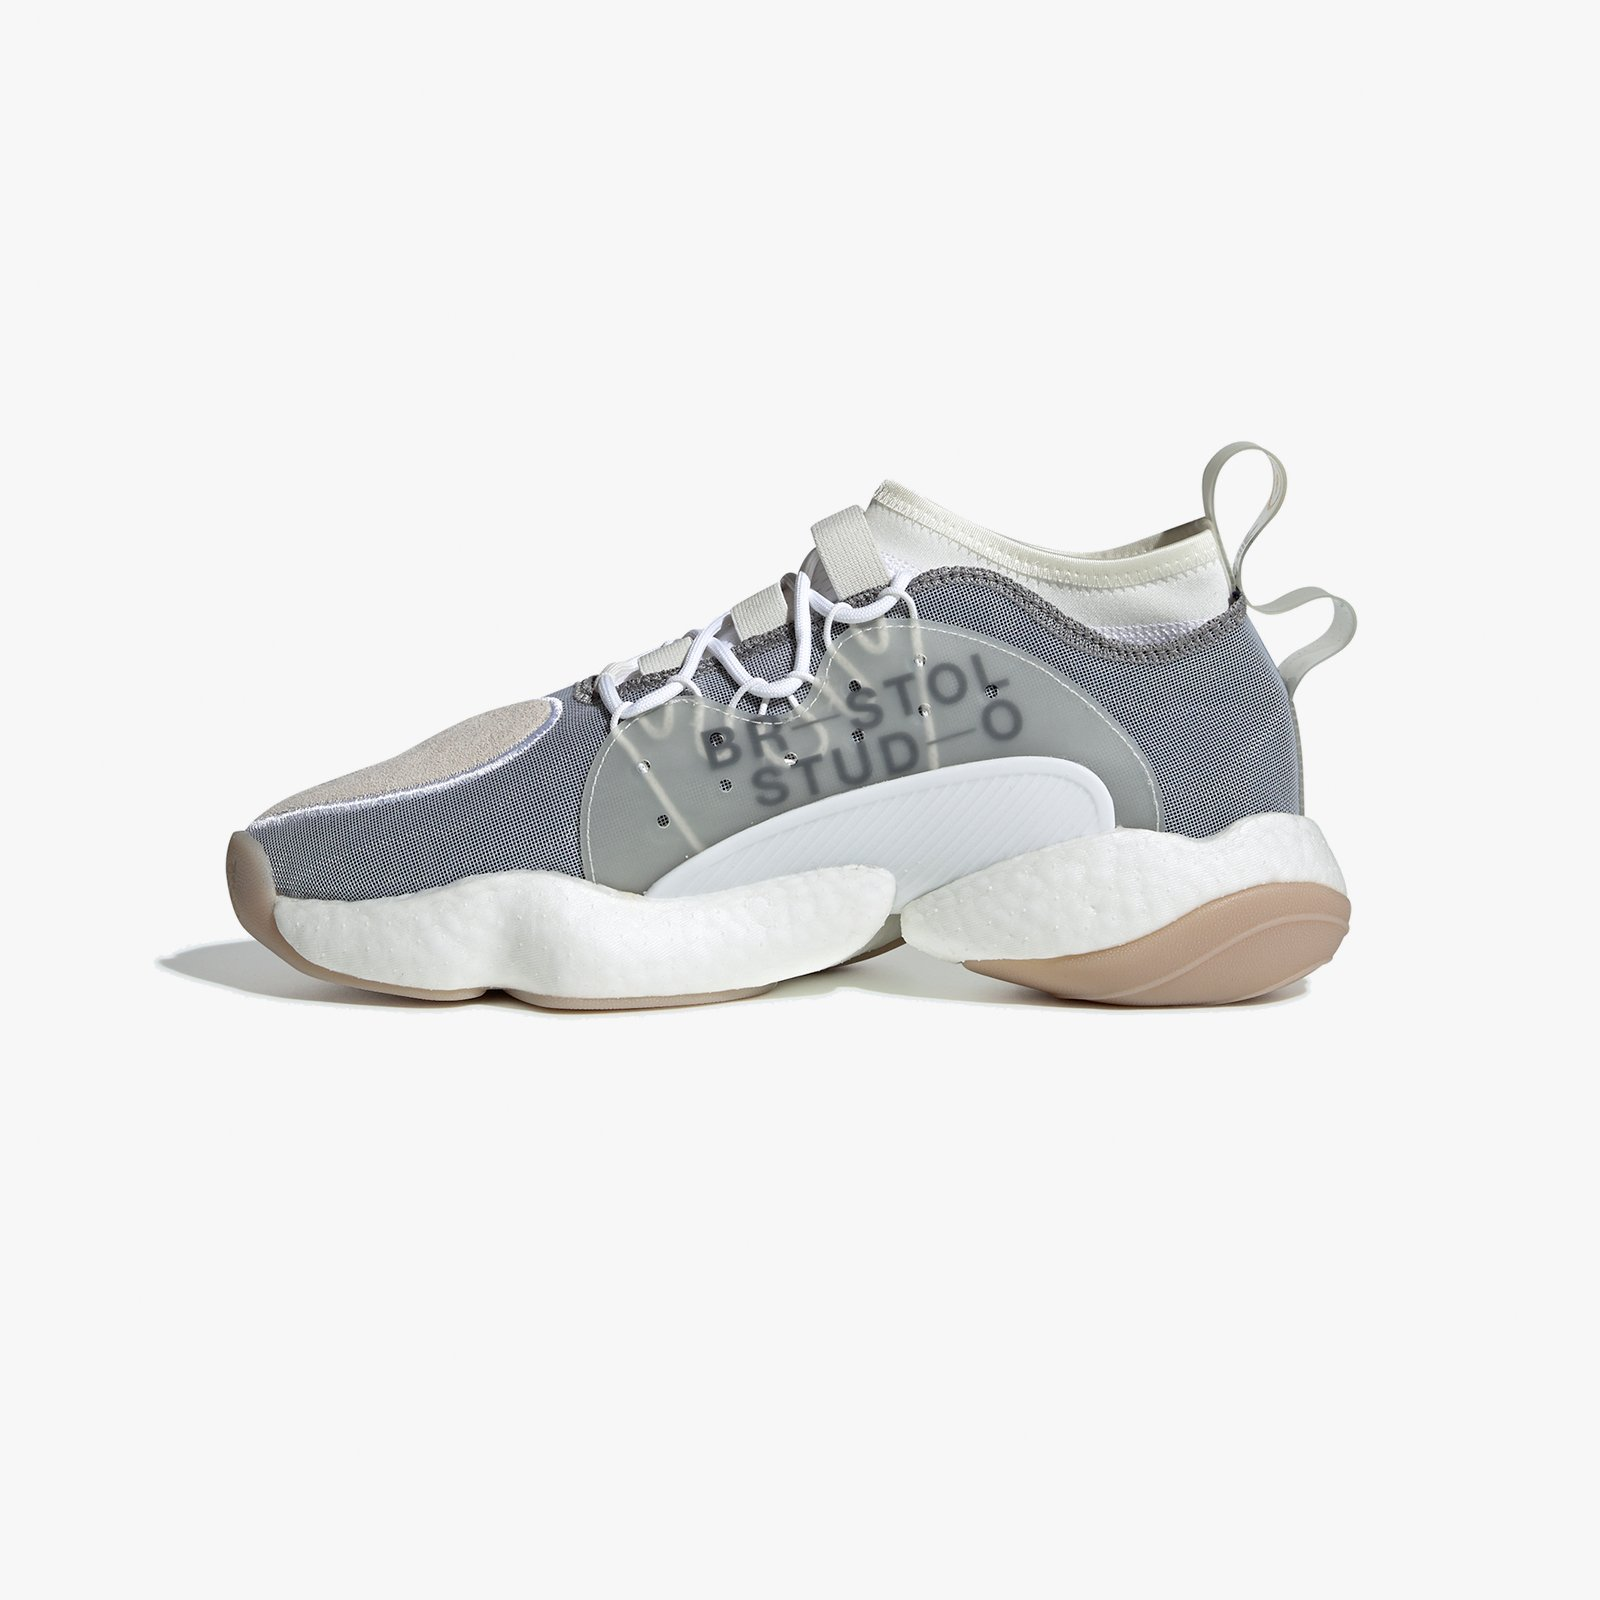 bristol crazy byw lvl ii shoes